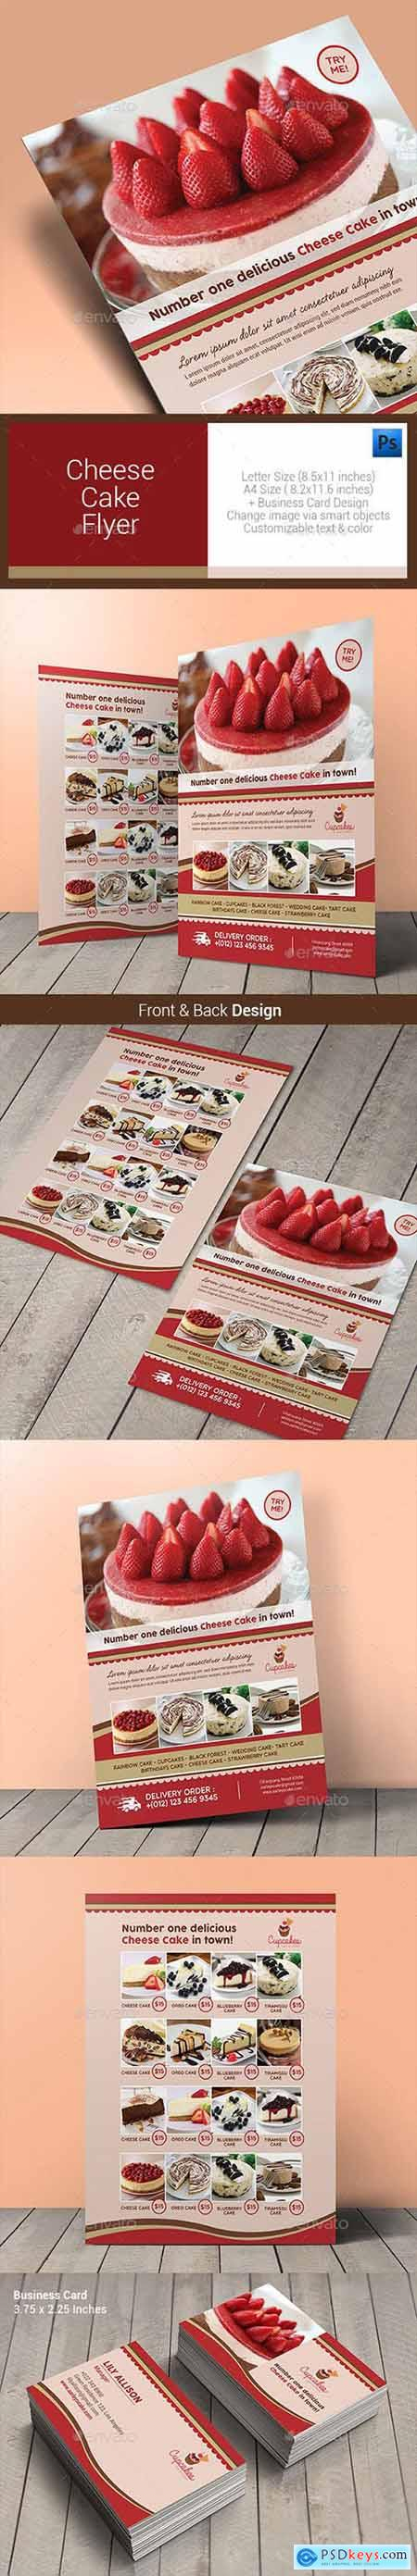 Cheese Cake Menu Flyer